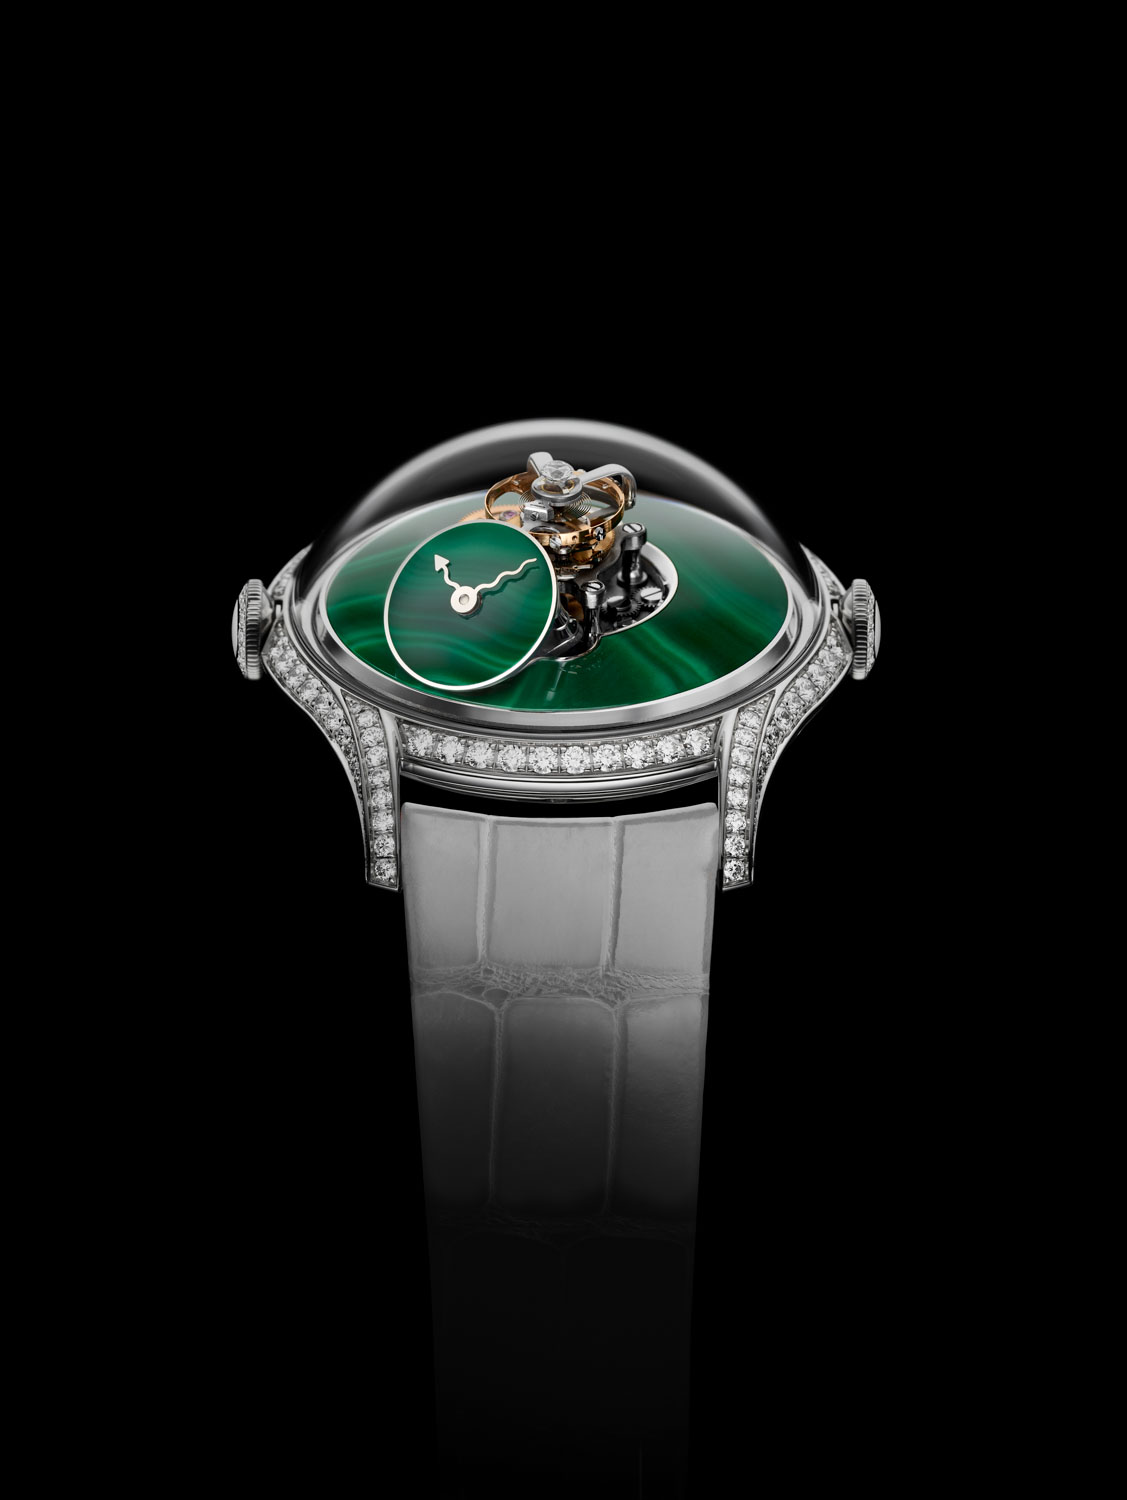 The LM FlyingT, featuring a dial plate and subdial in the vibrant green gemstone, called malachite